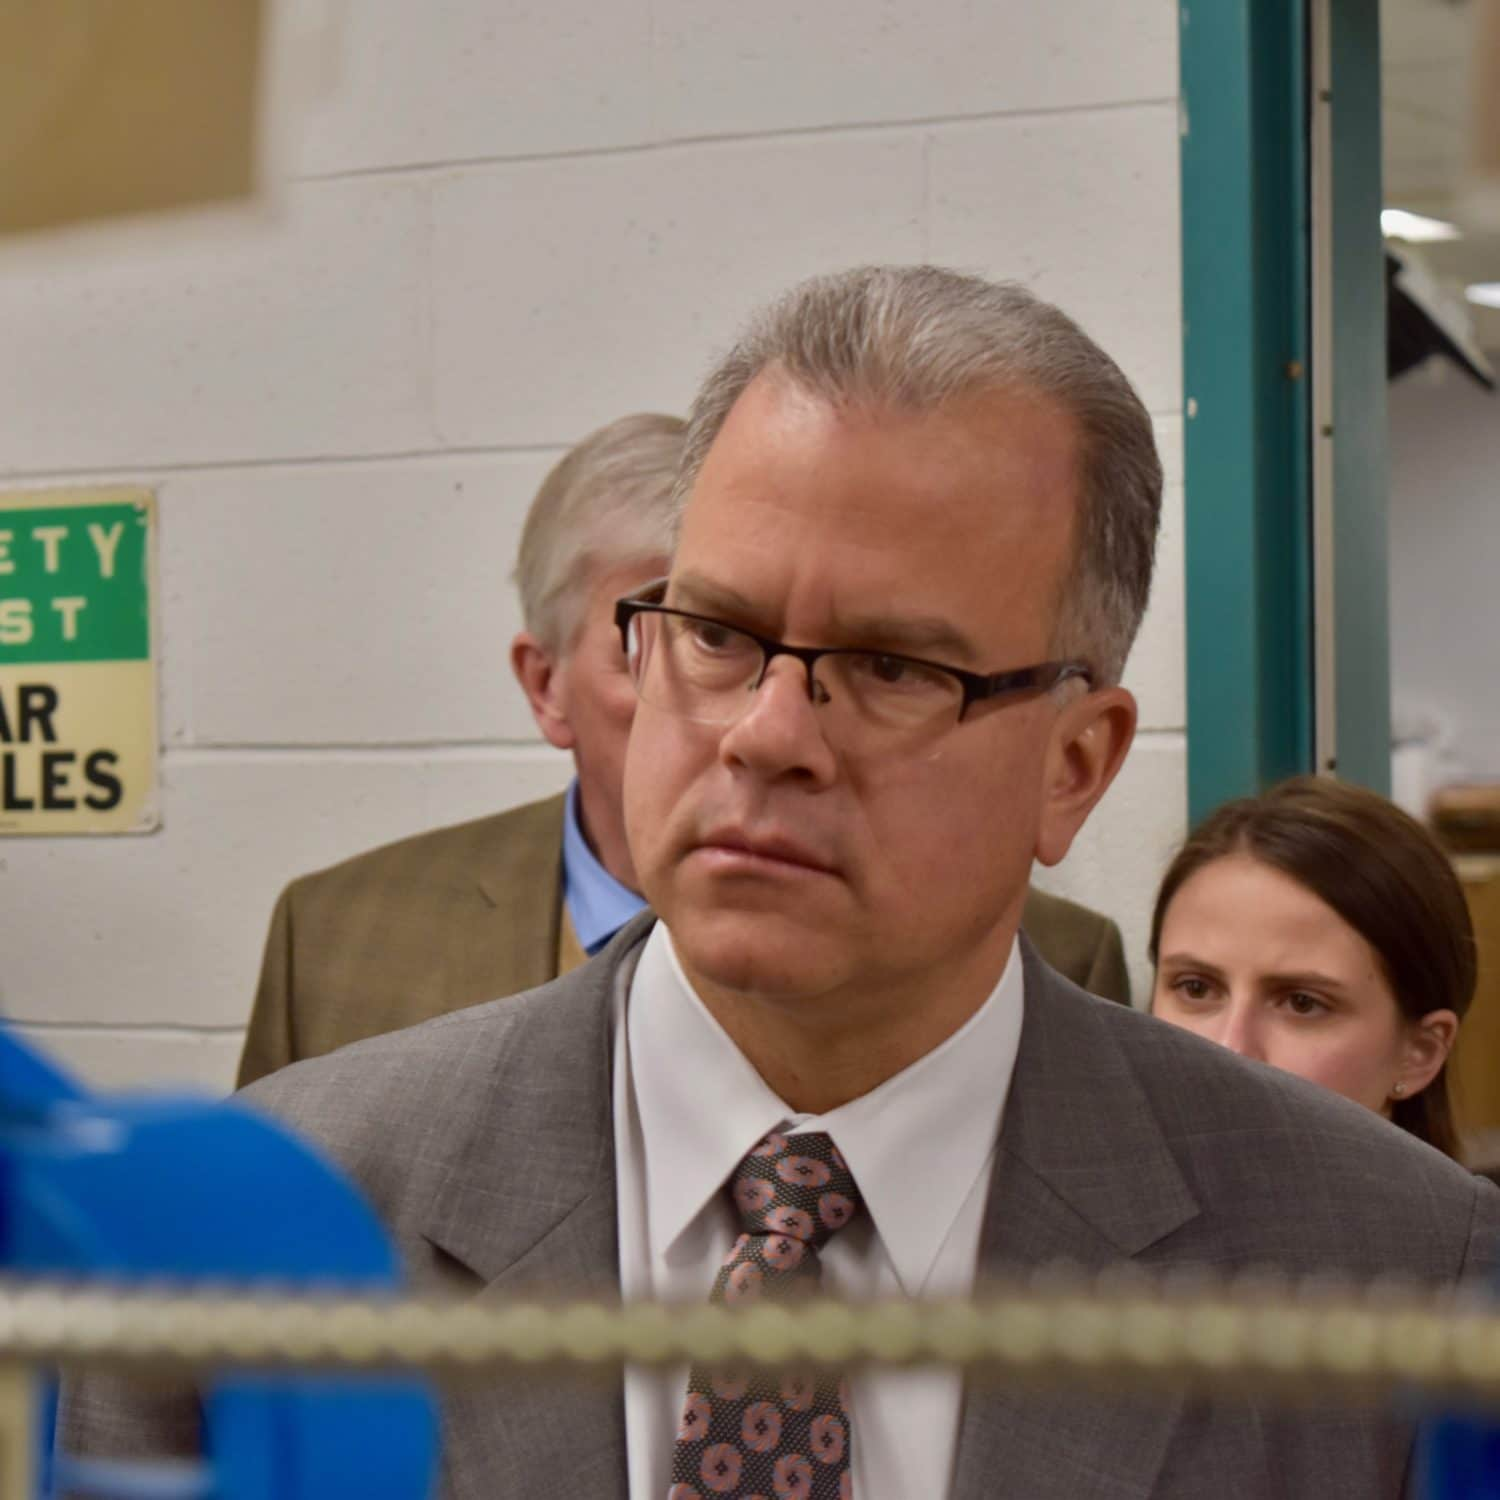 Photo for Speaker Mattiello shares his current thinking on sexual harassment and respect for women